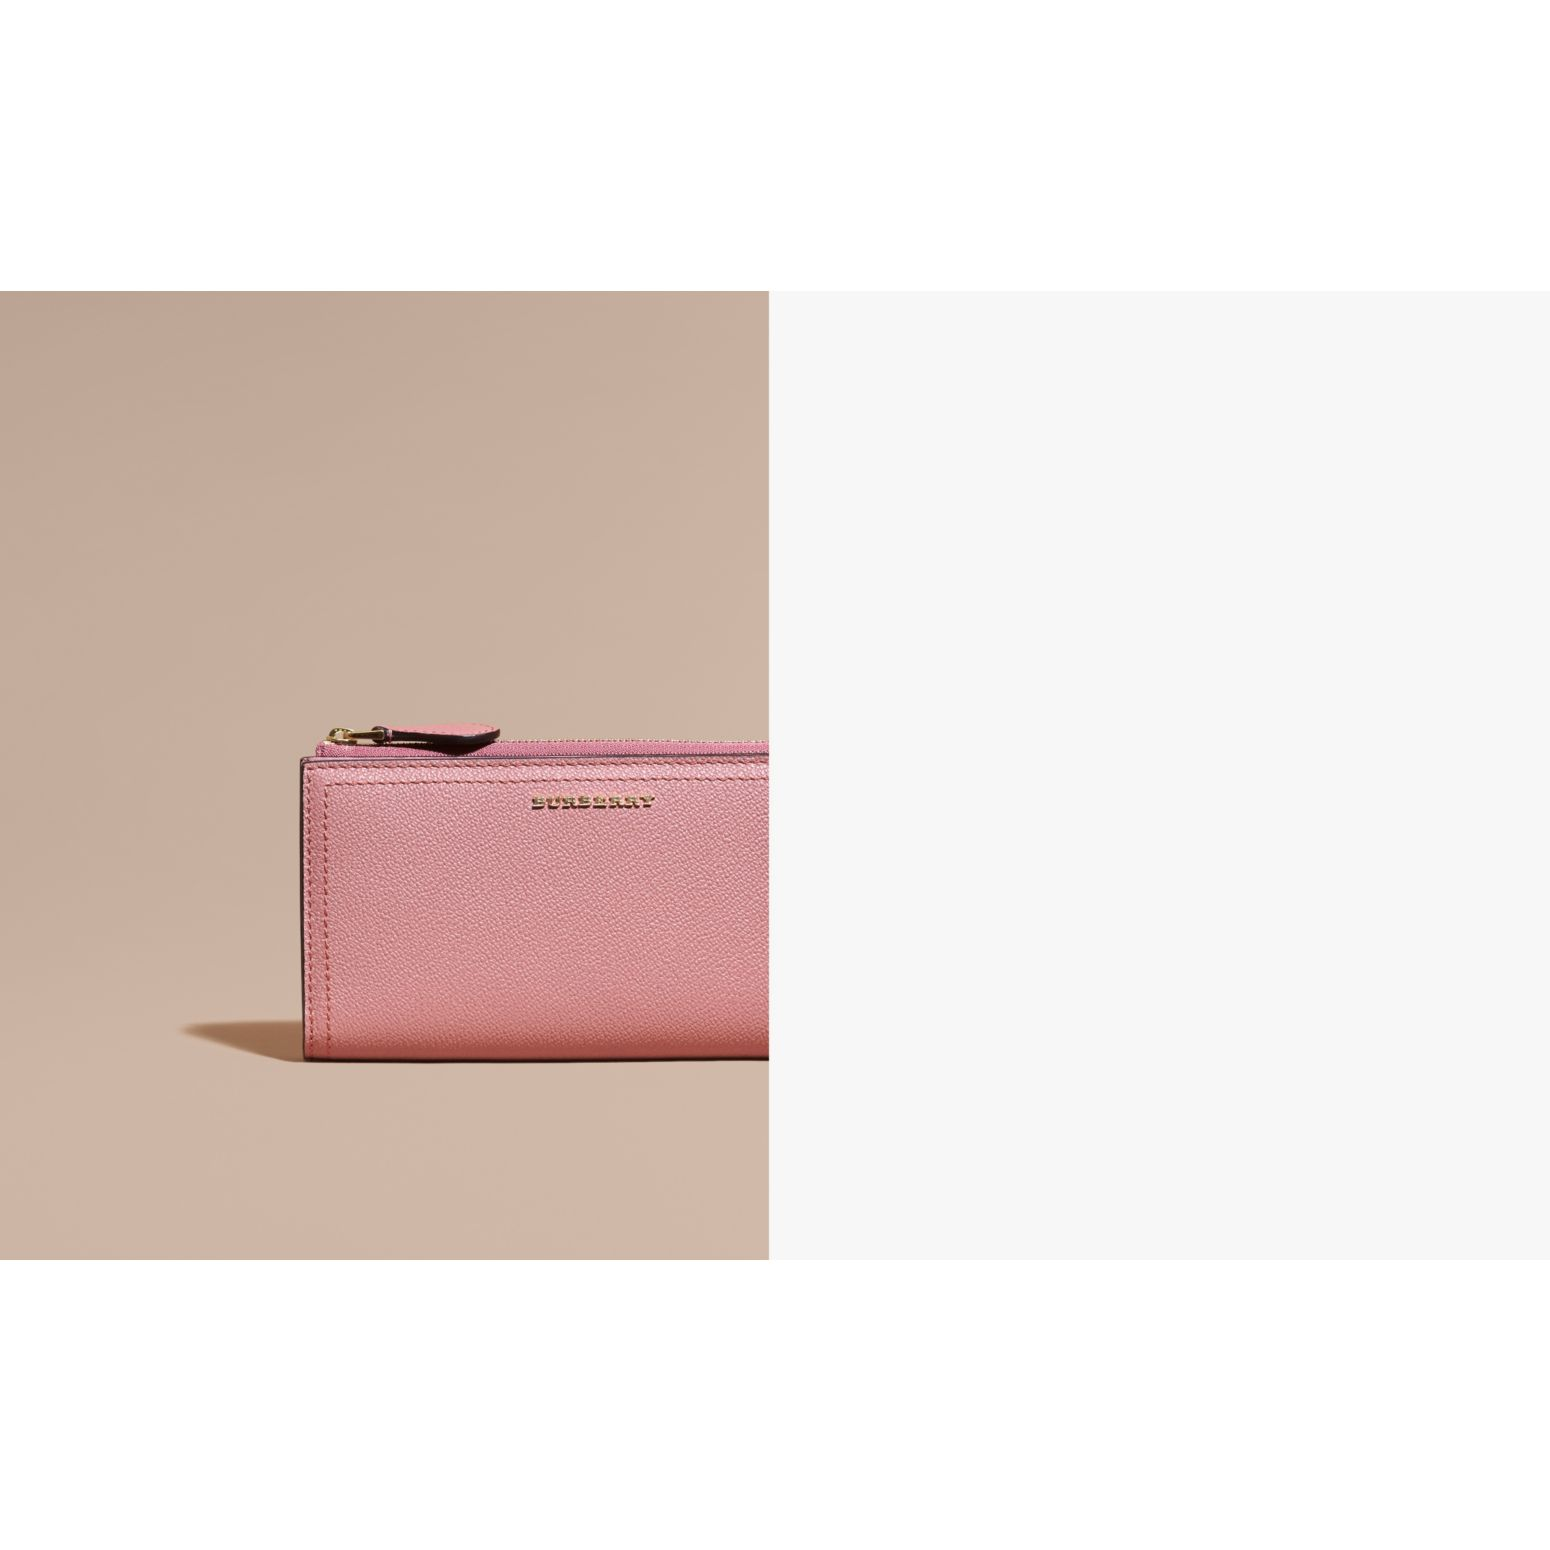 Grainy Leather Ziparound Wallet in Dusty Pink - Women | Burberry - gallery image 2